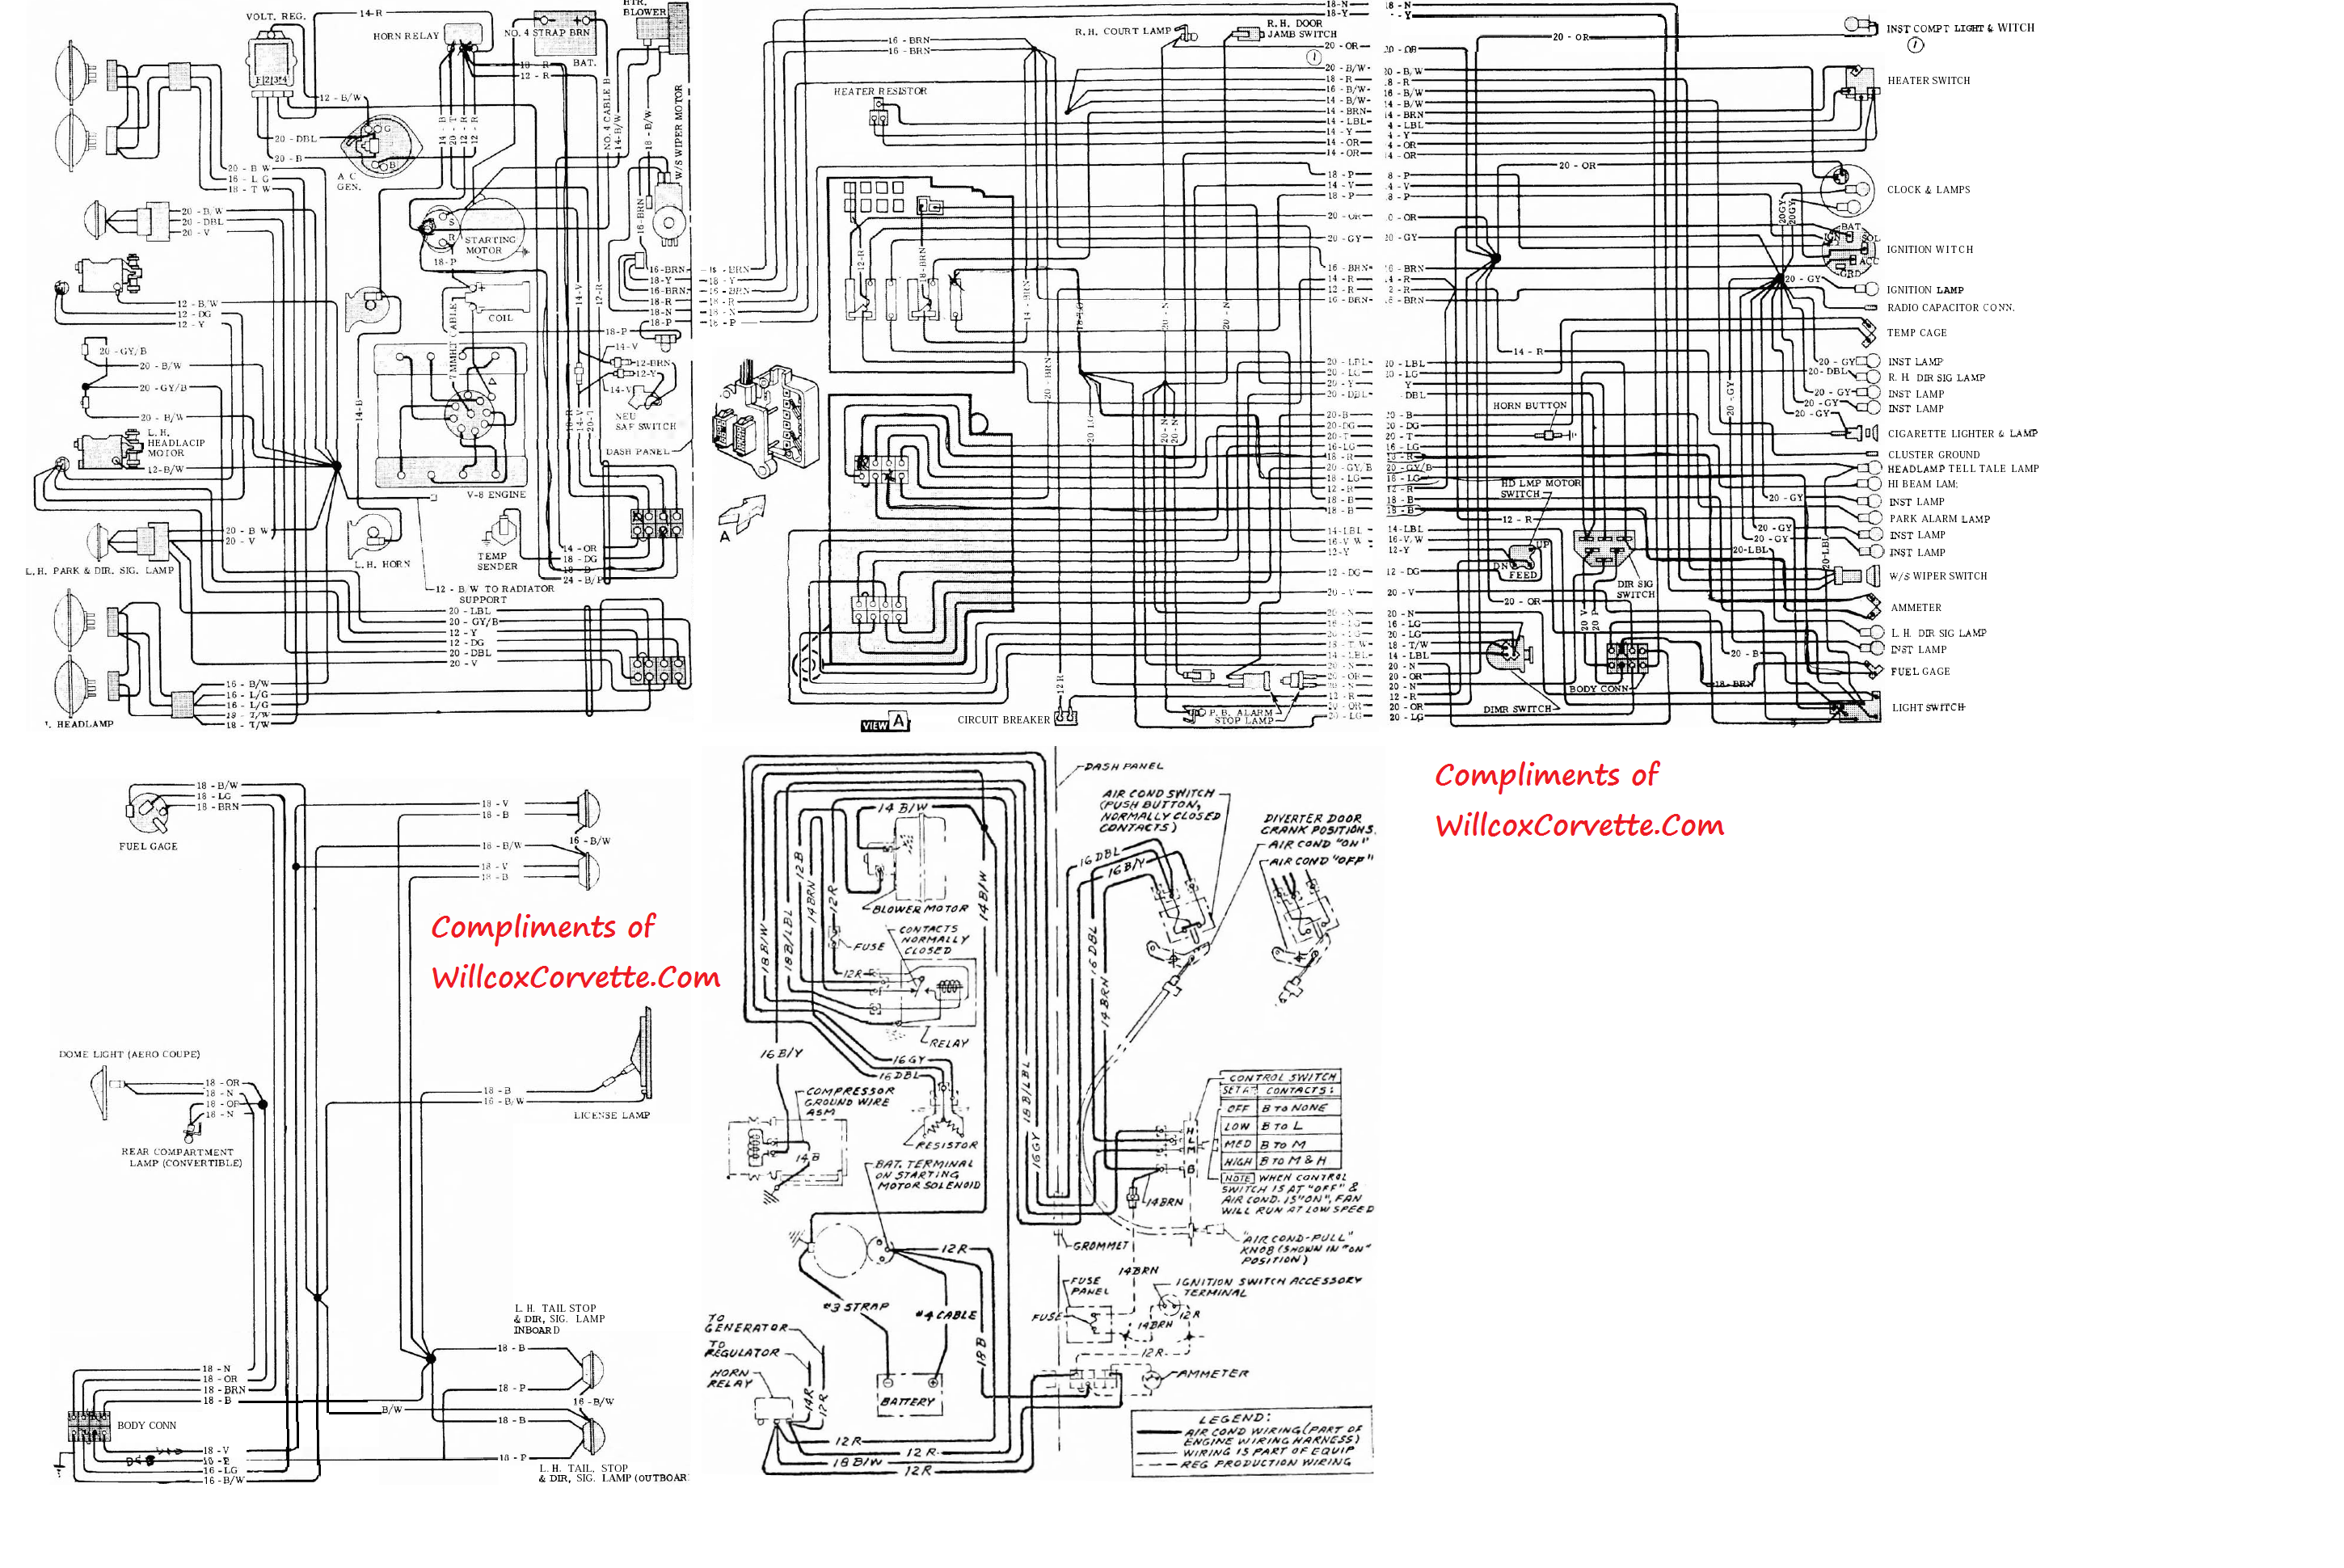 1999 Corvette Wiring Diagram Enthusiast Diagrams 2002 2003 Ssr 1957 Rh Banyan Palace Com